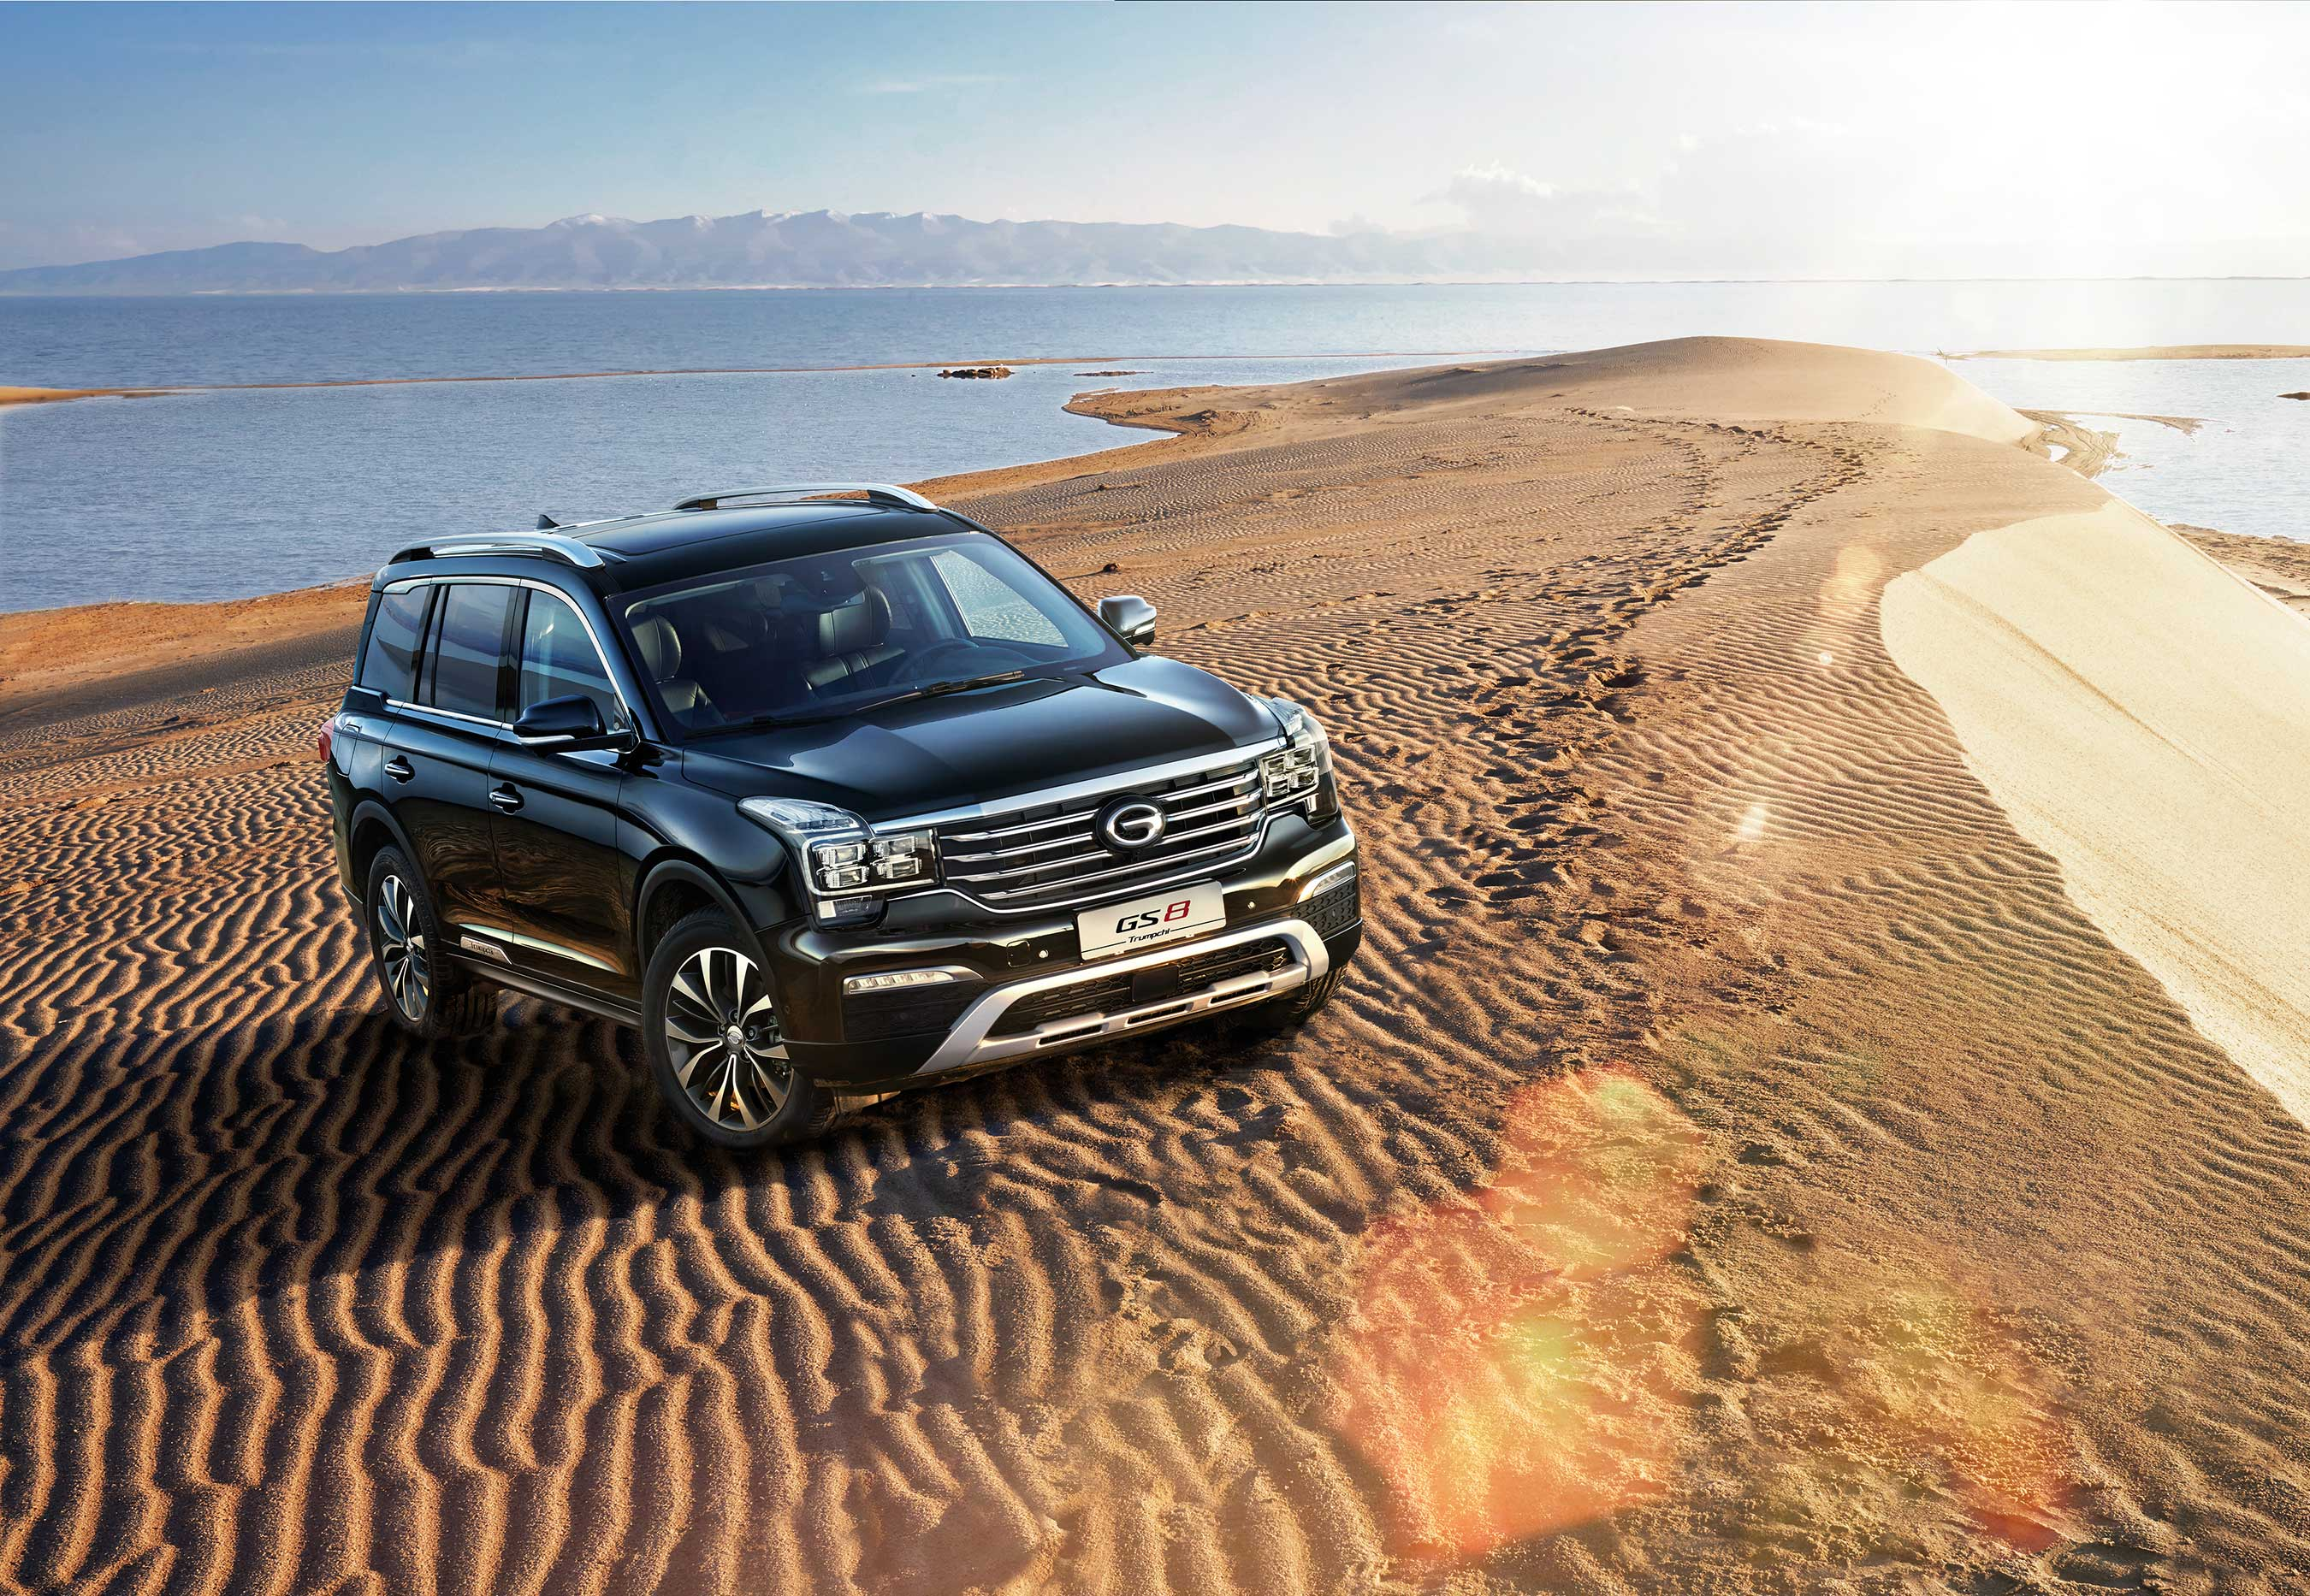 GAC Motor Releases the GS8, its First 7-seat SUV, to Redefine High-end SUV Market